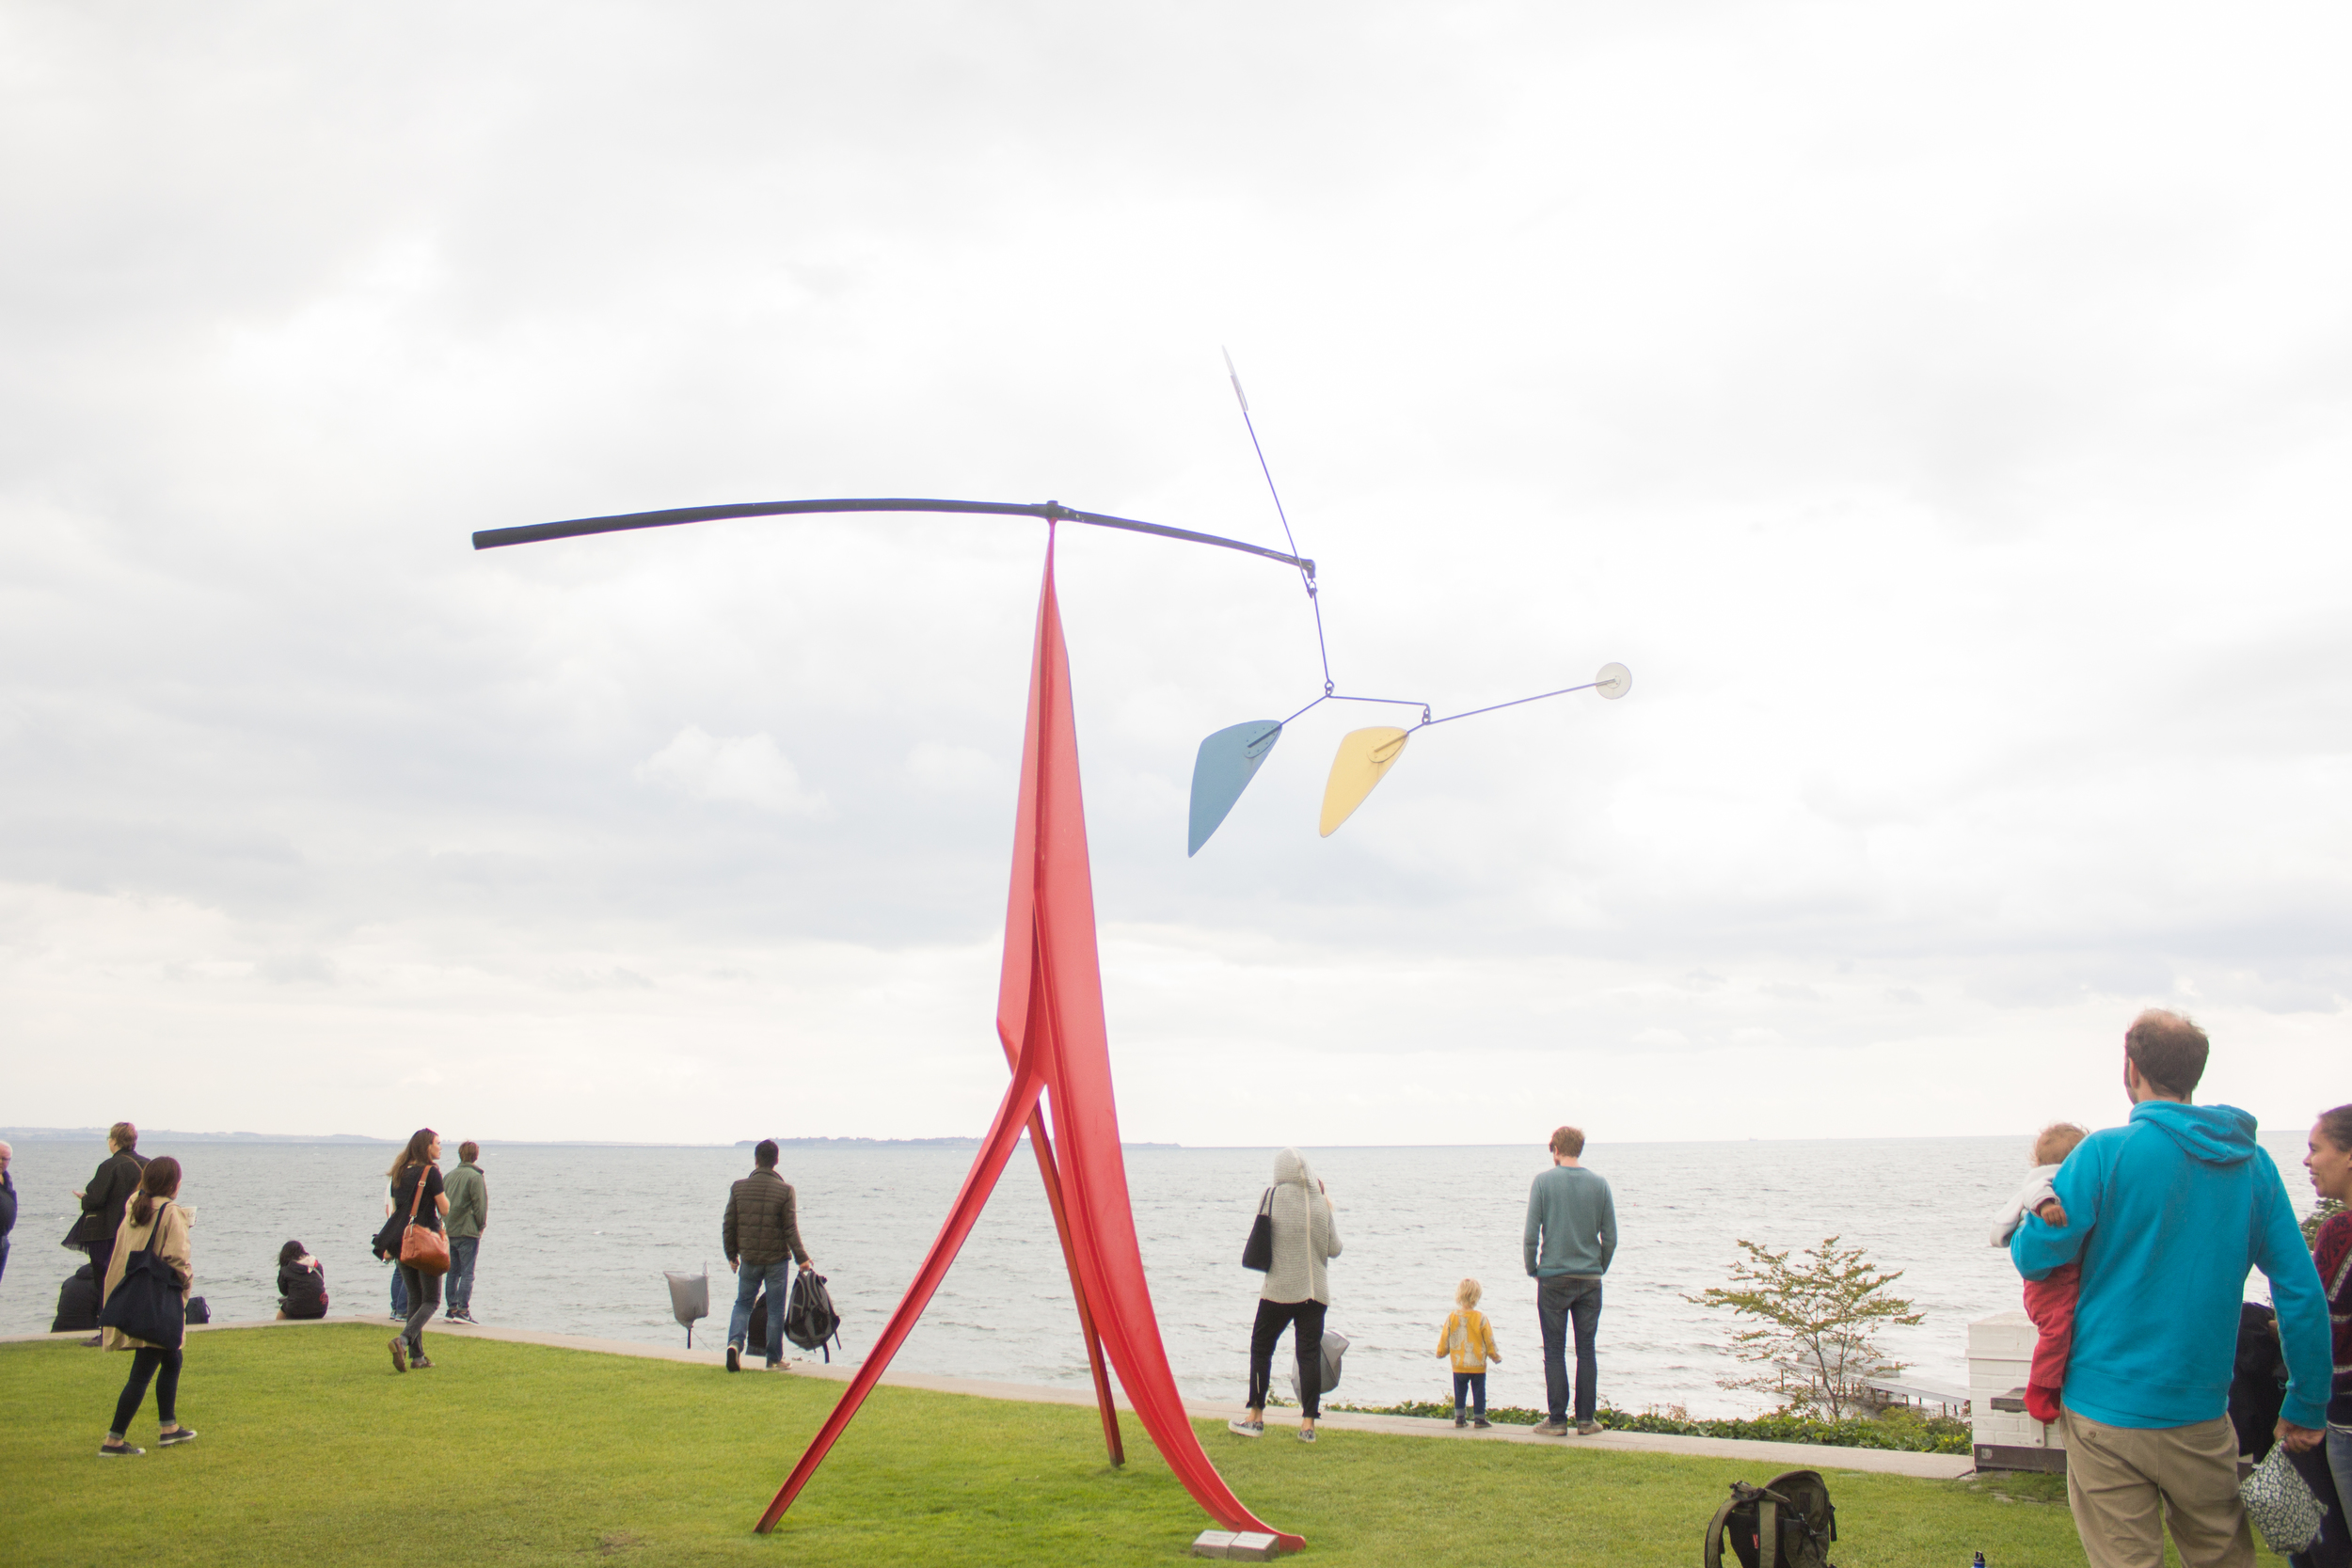 Alexander calder at Louisiana, Copenhagen | Seeds and Stitches blog